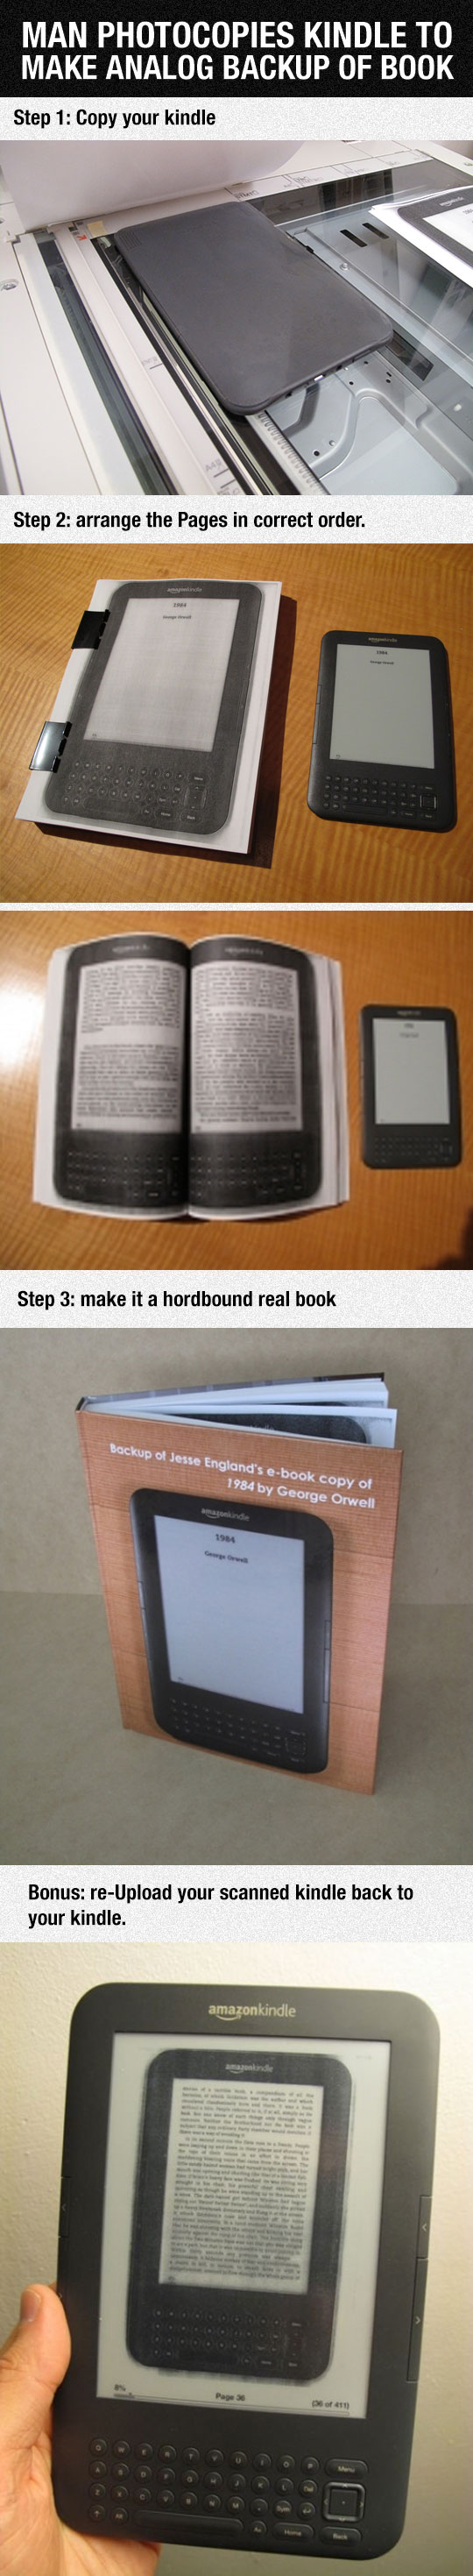 Copying A Book